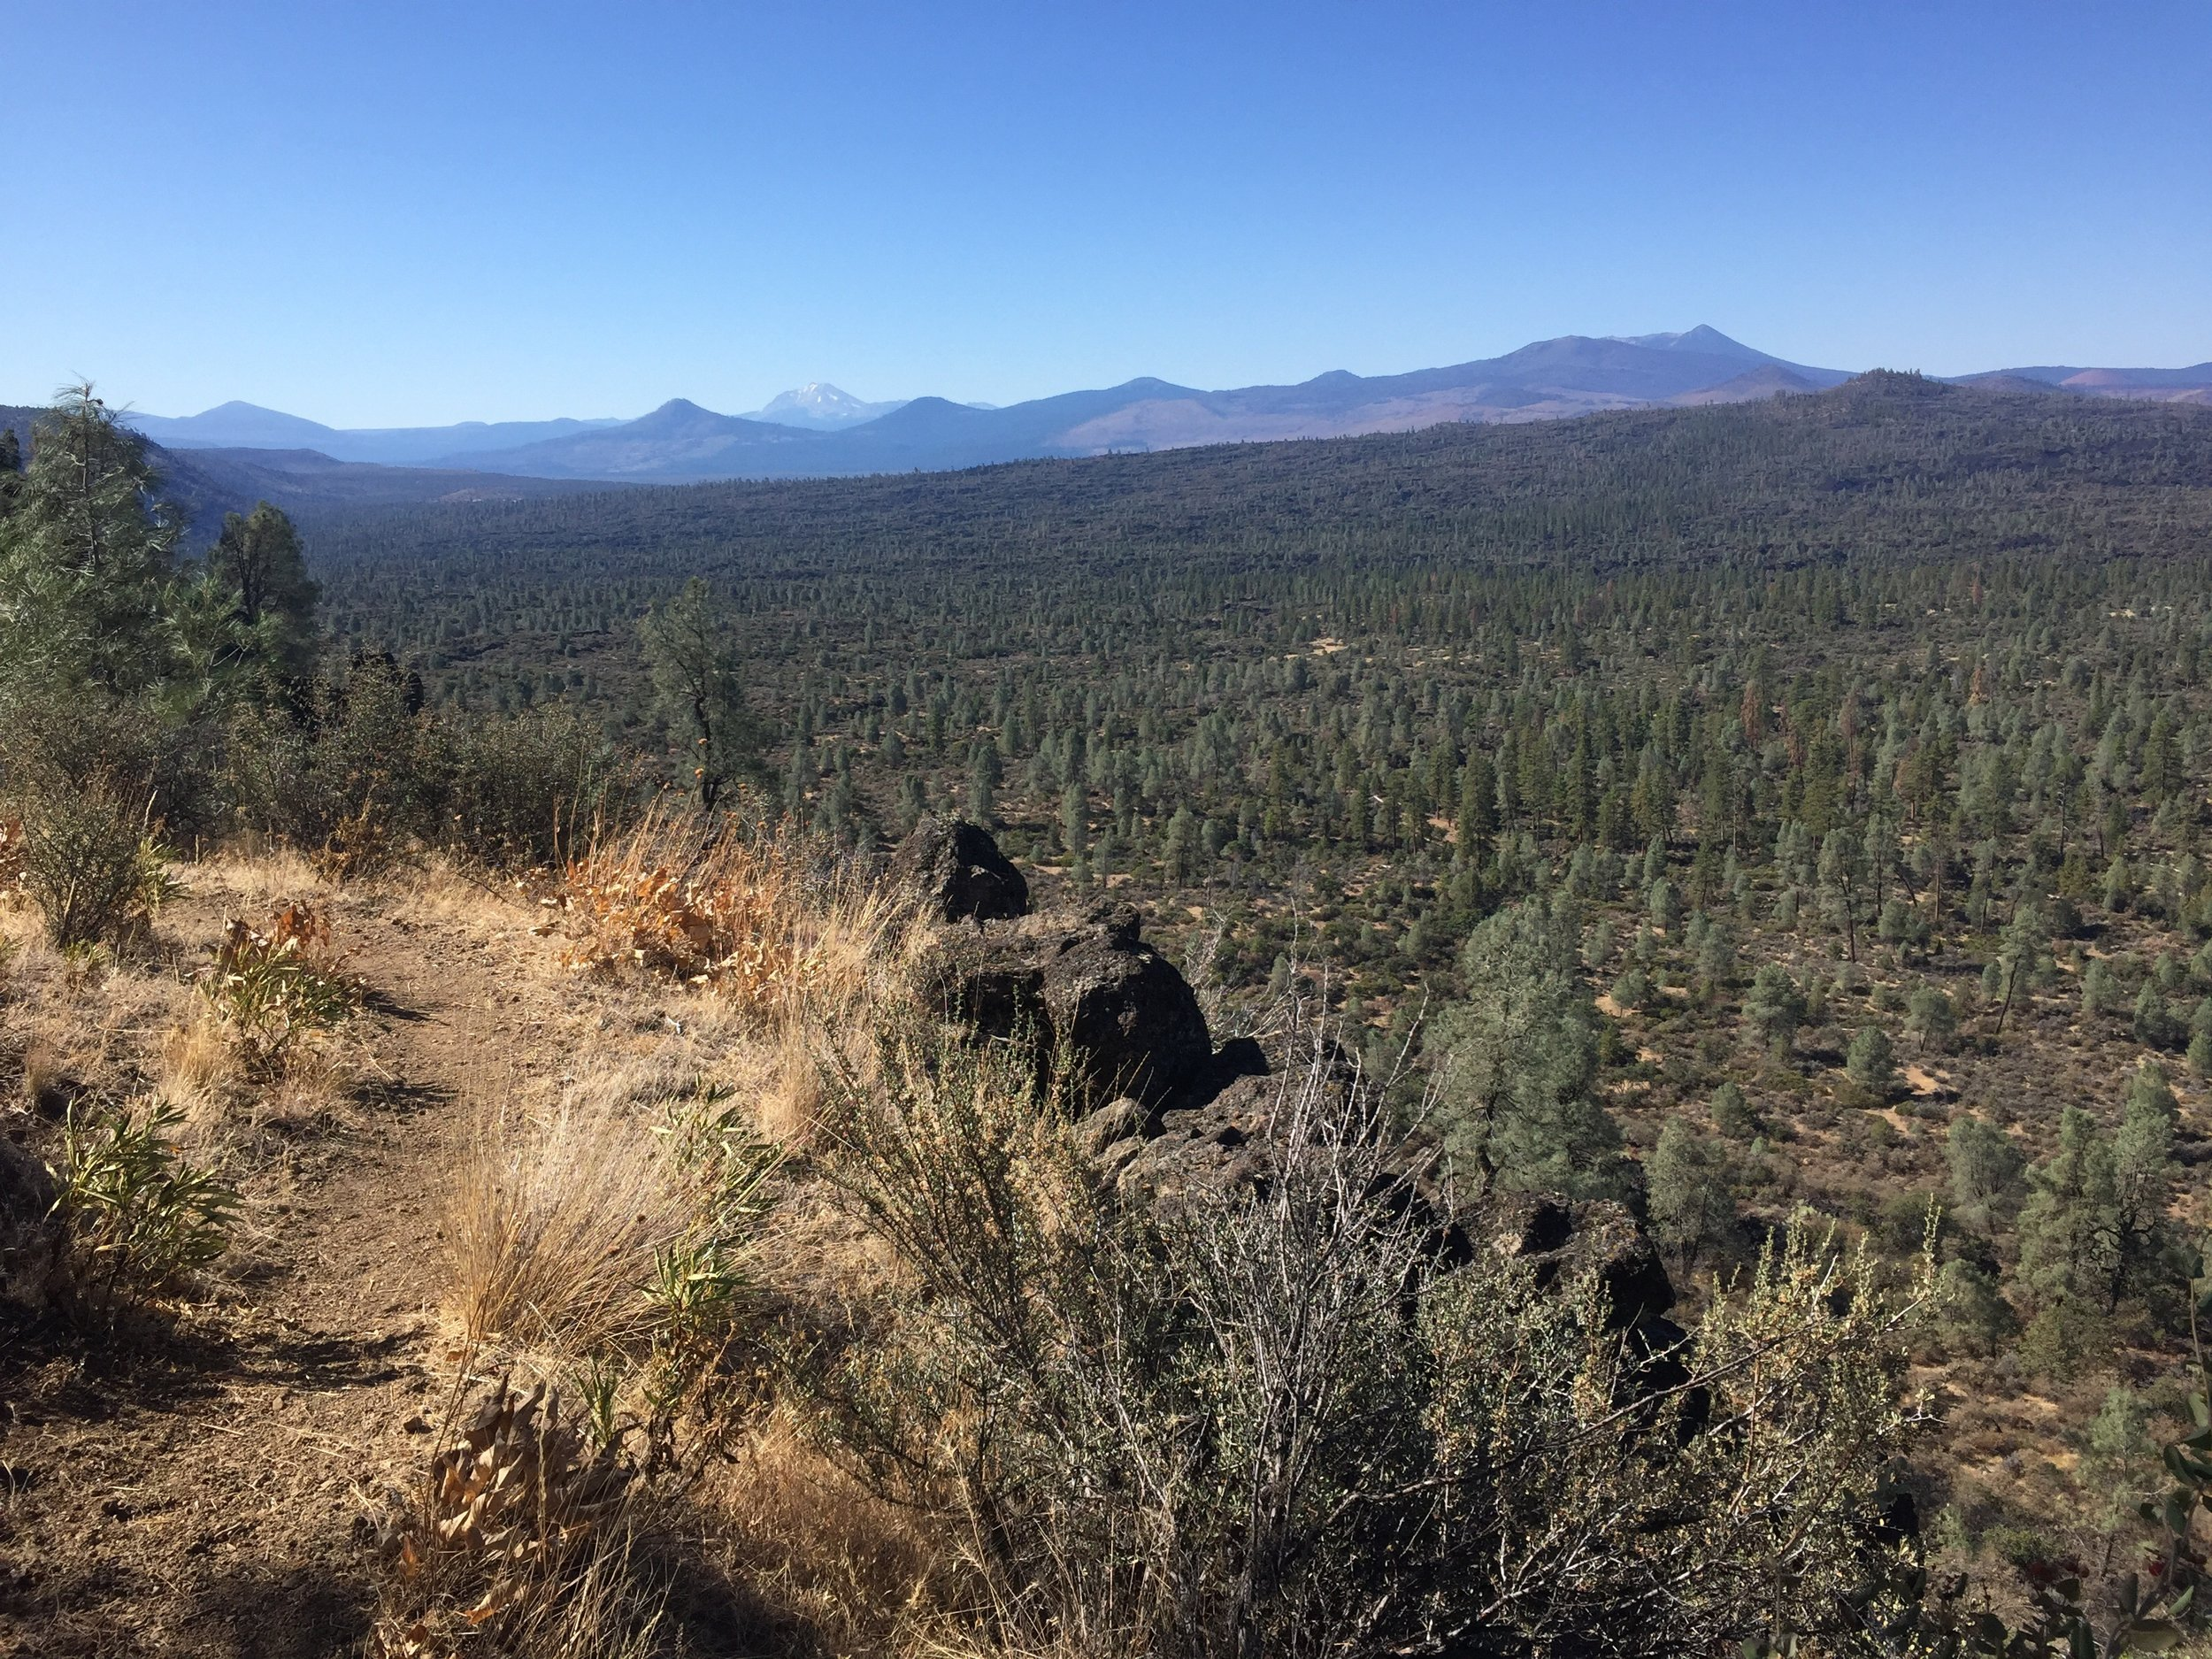 Climbing up the Hat Creek Rim's black lava edge, with a view of the Gray pine forest below